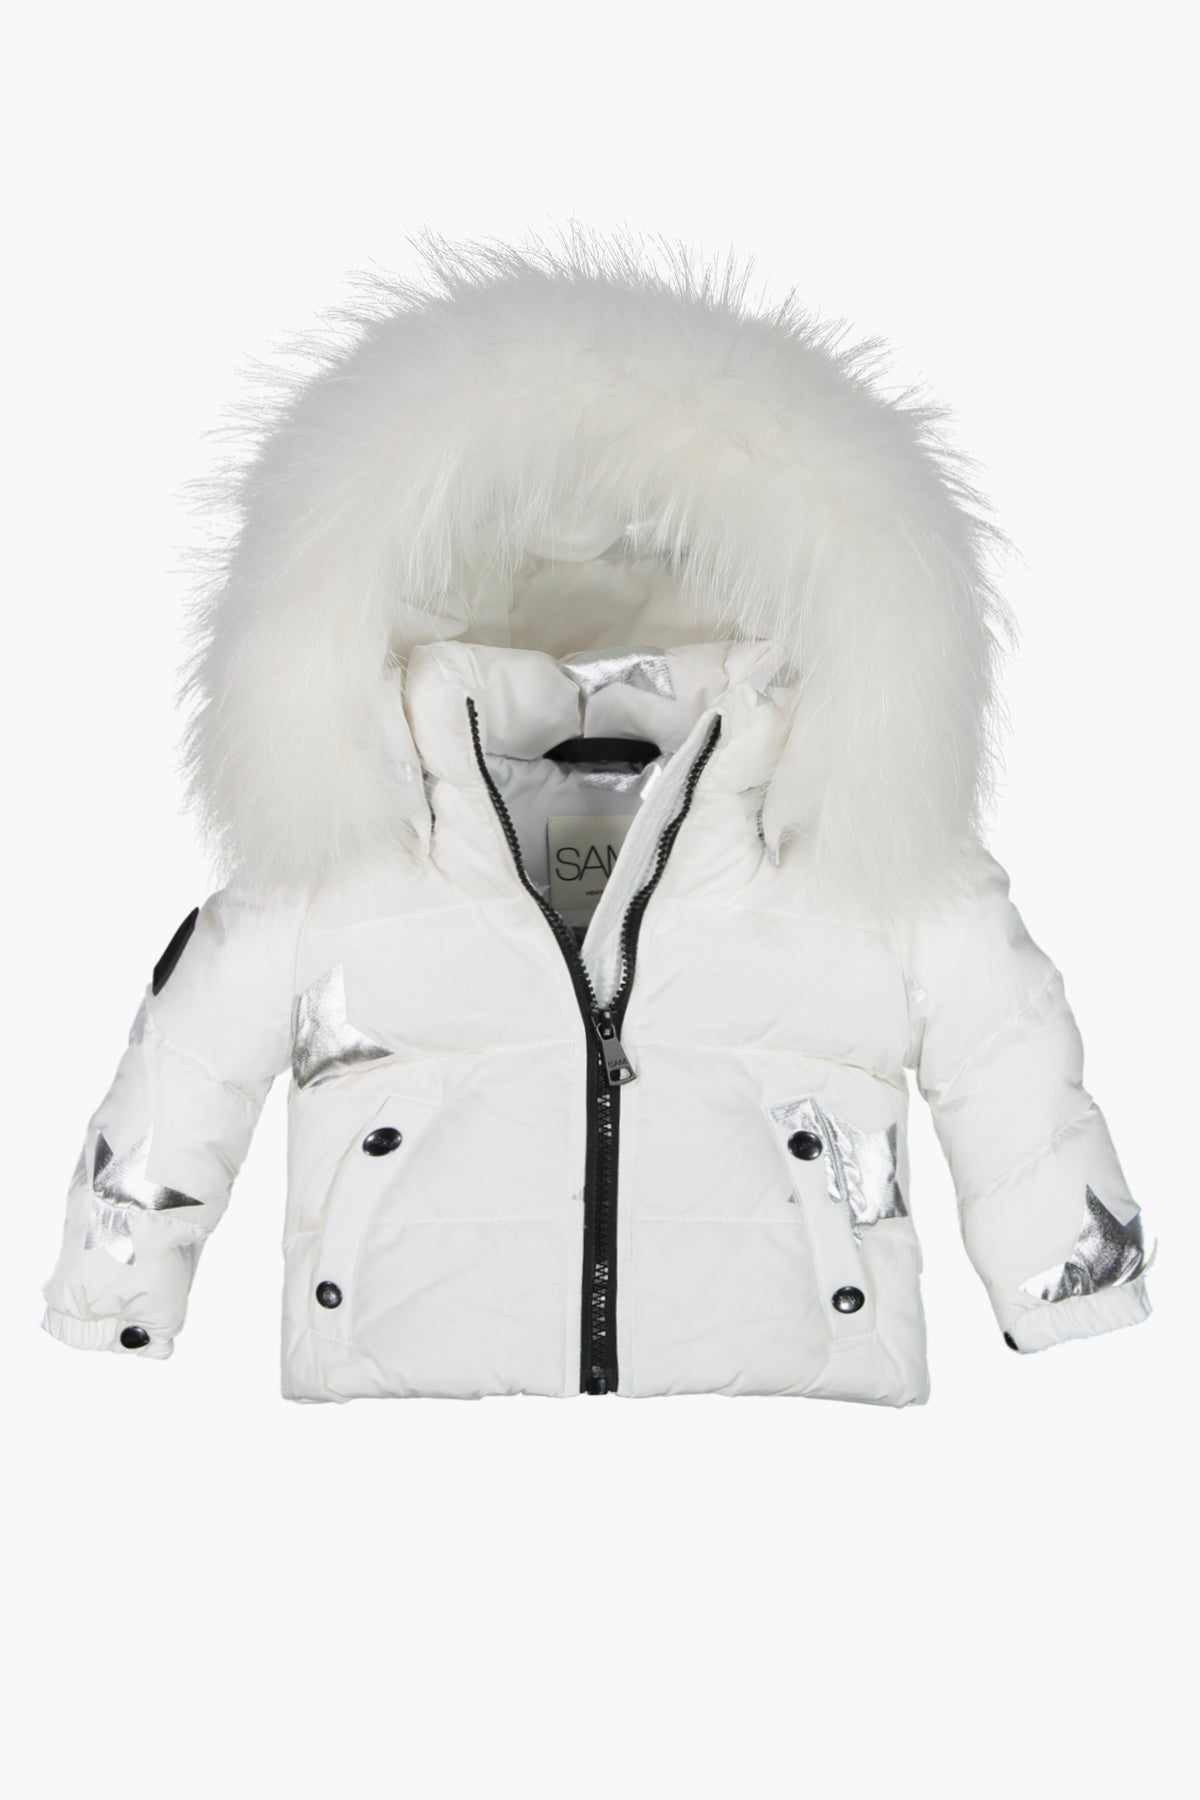 SAM. Star Snowbunny Baby Girl Jacket